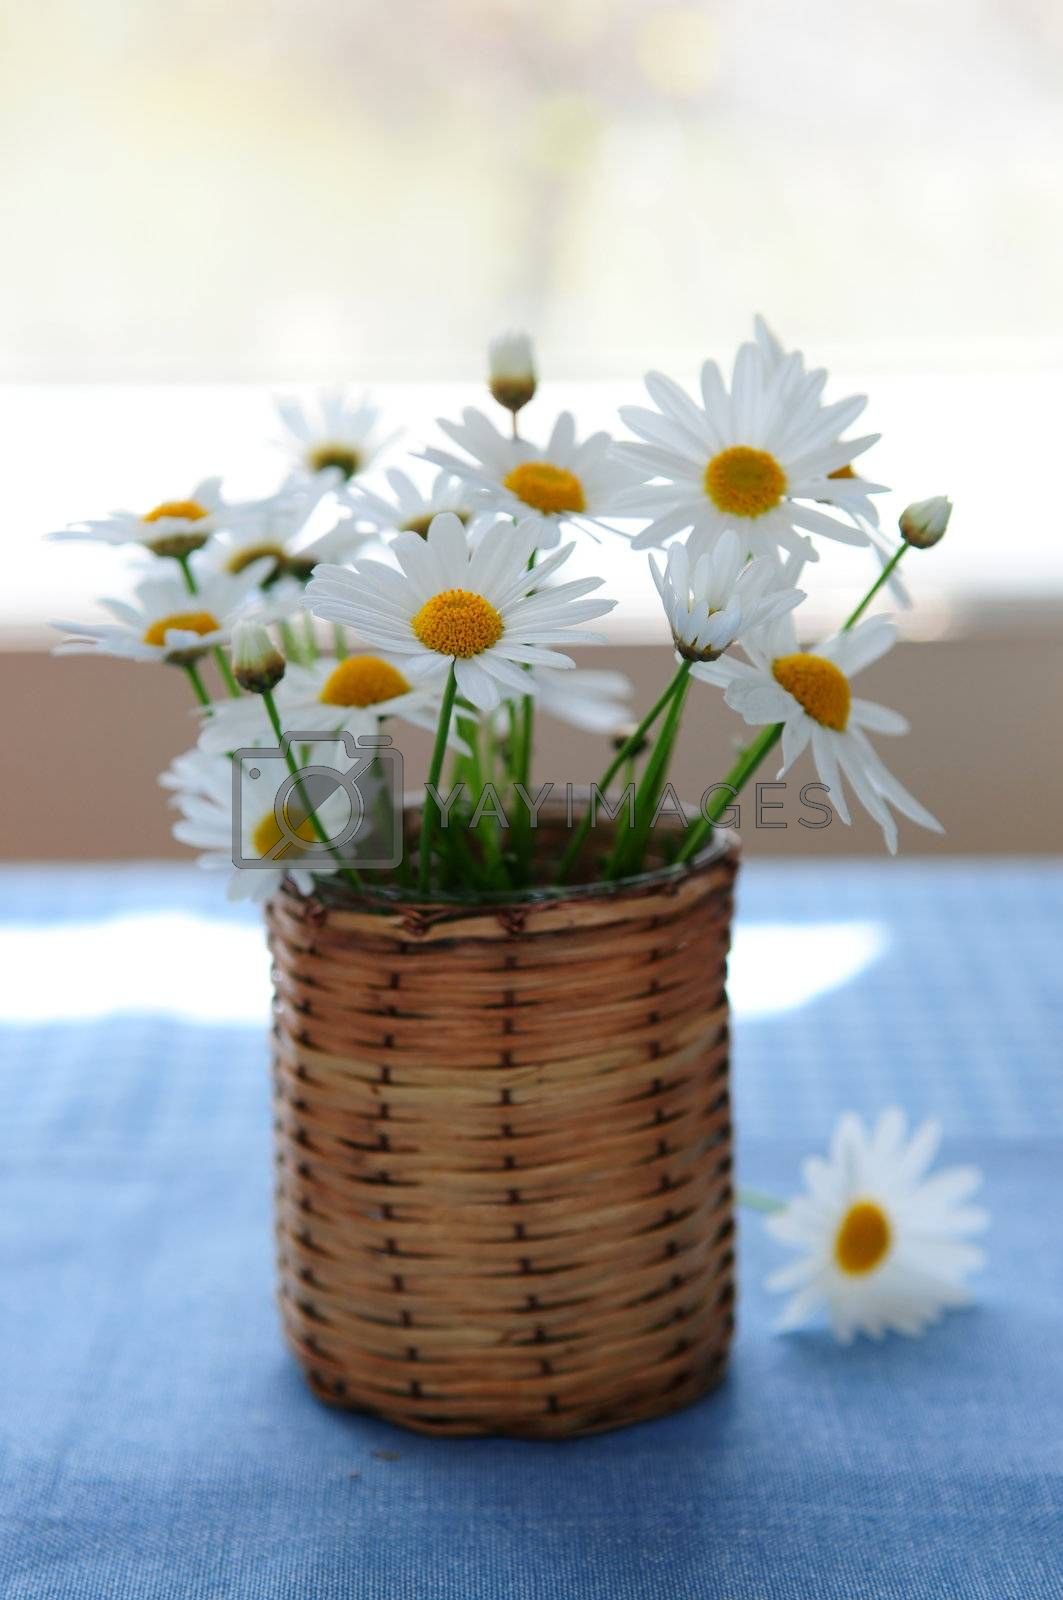 Small bouquet of summer daisies in the morning